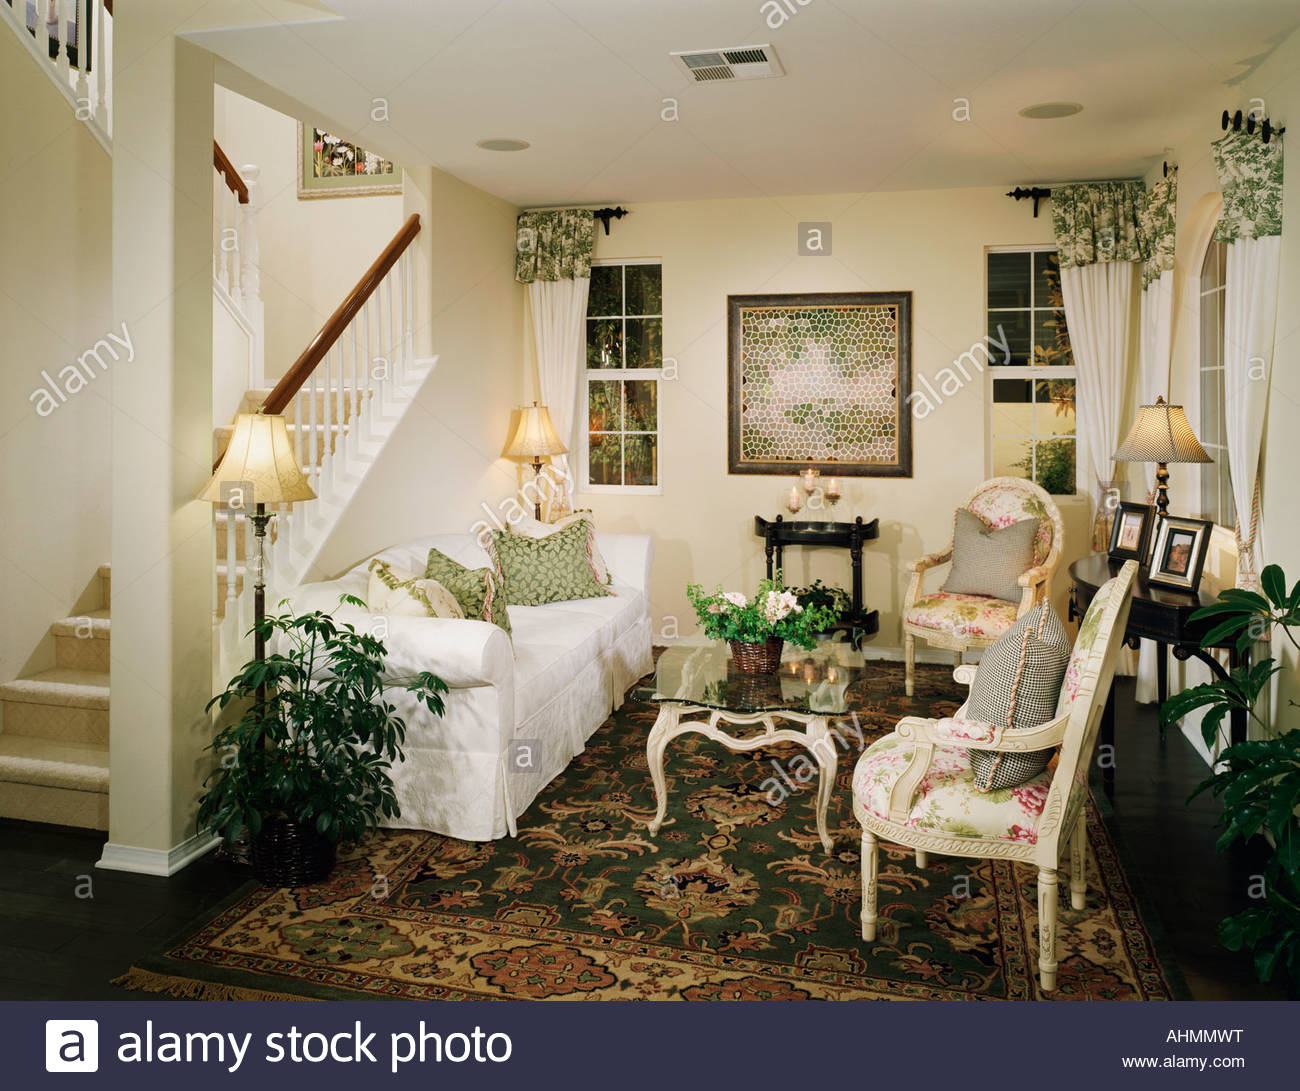 Cozy Sitting Room With An Old Fashioned Style Stock Photo